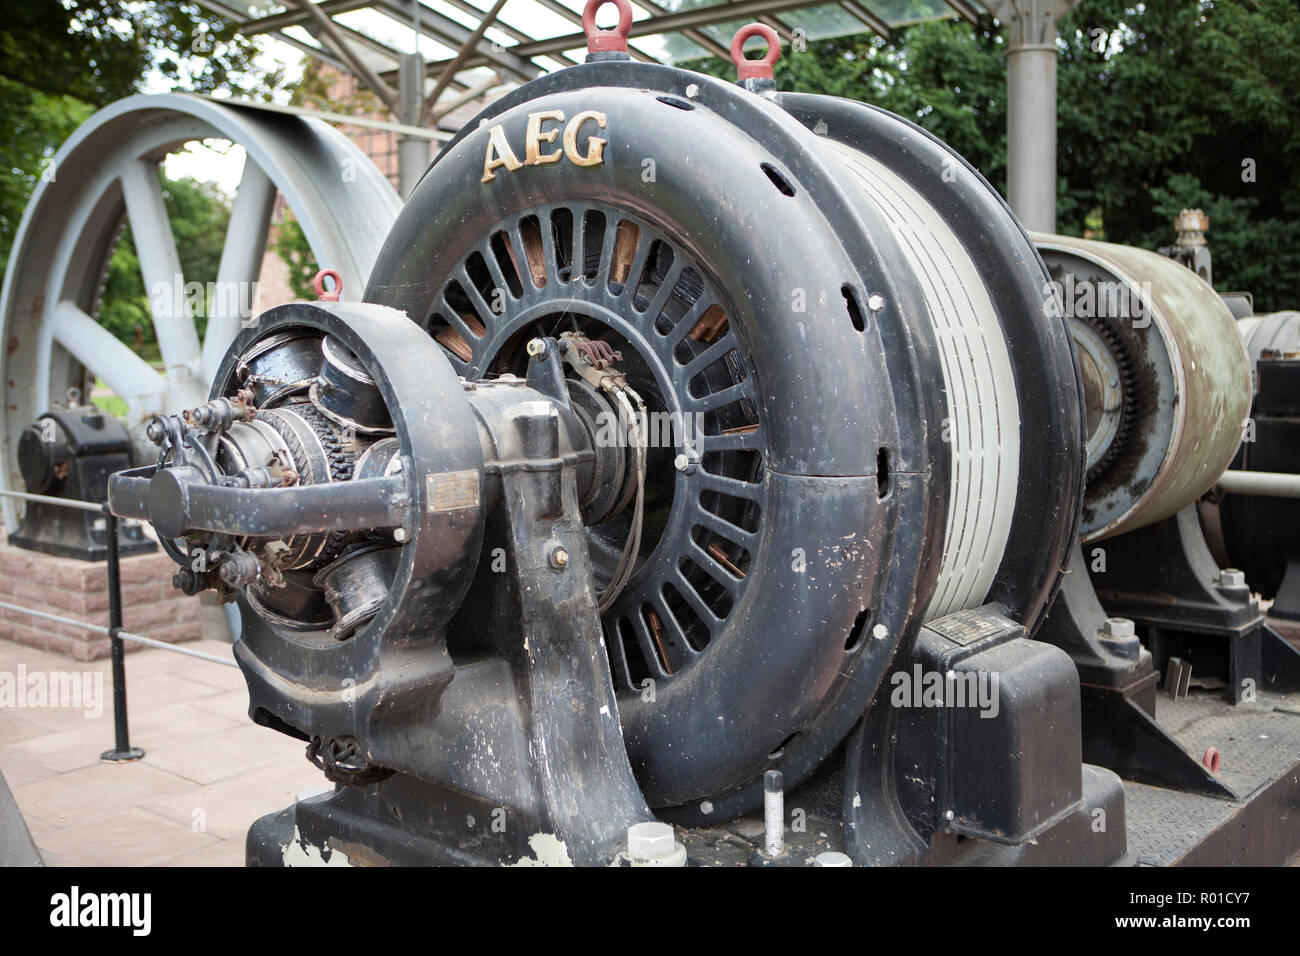 Old steam engine, Bodenwerder, Weserbergland, Lower Saxony, Germany, Europe - Stock Image